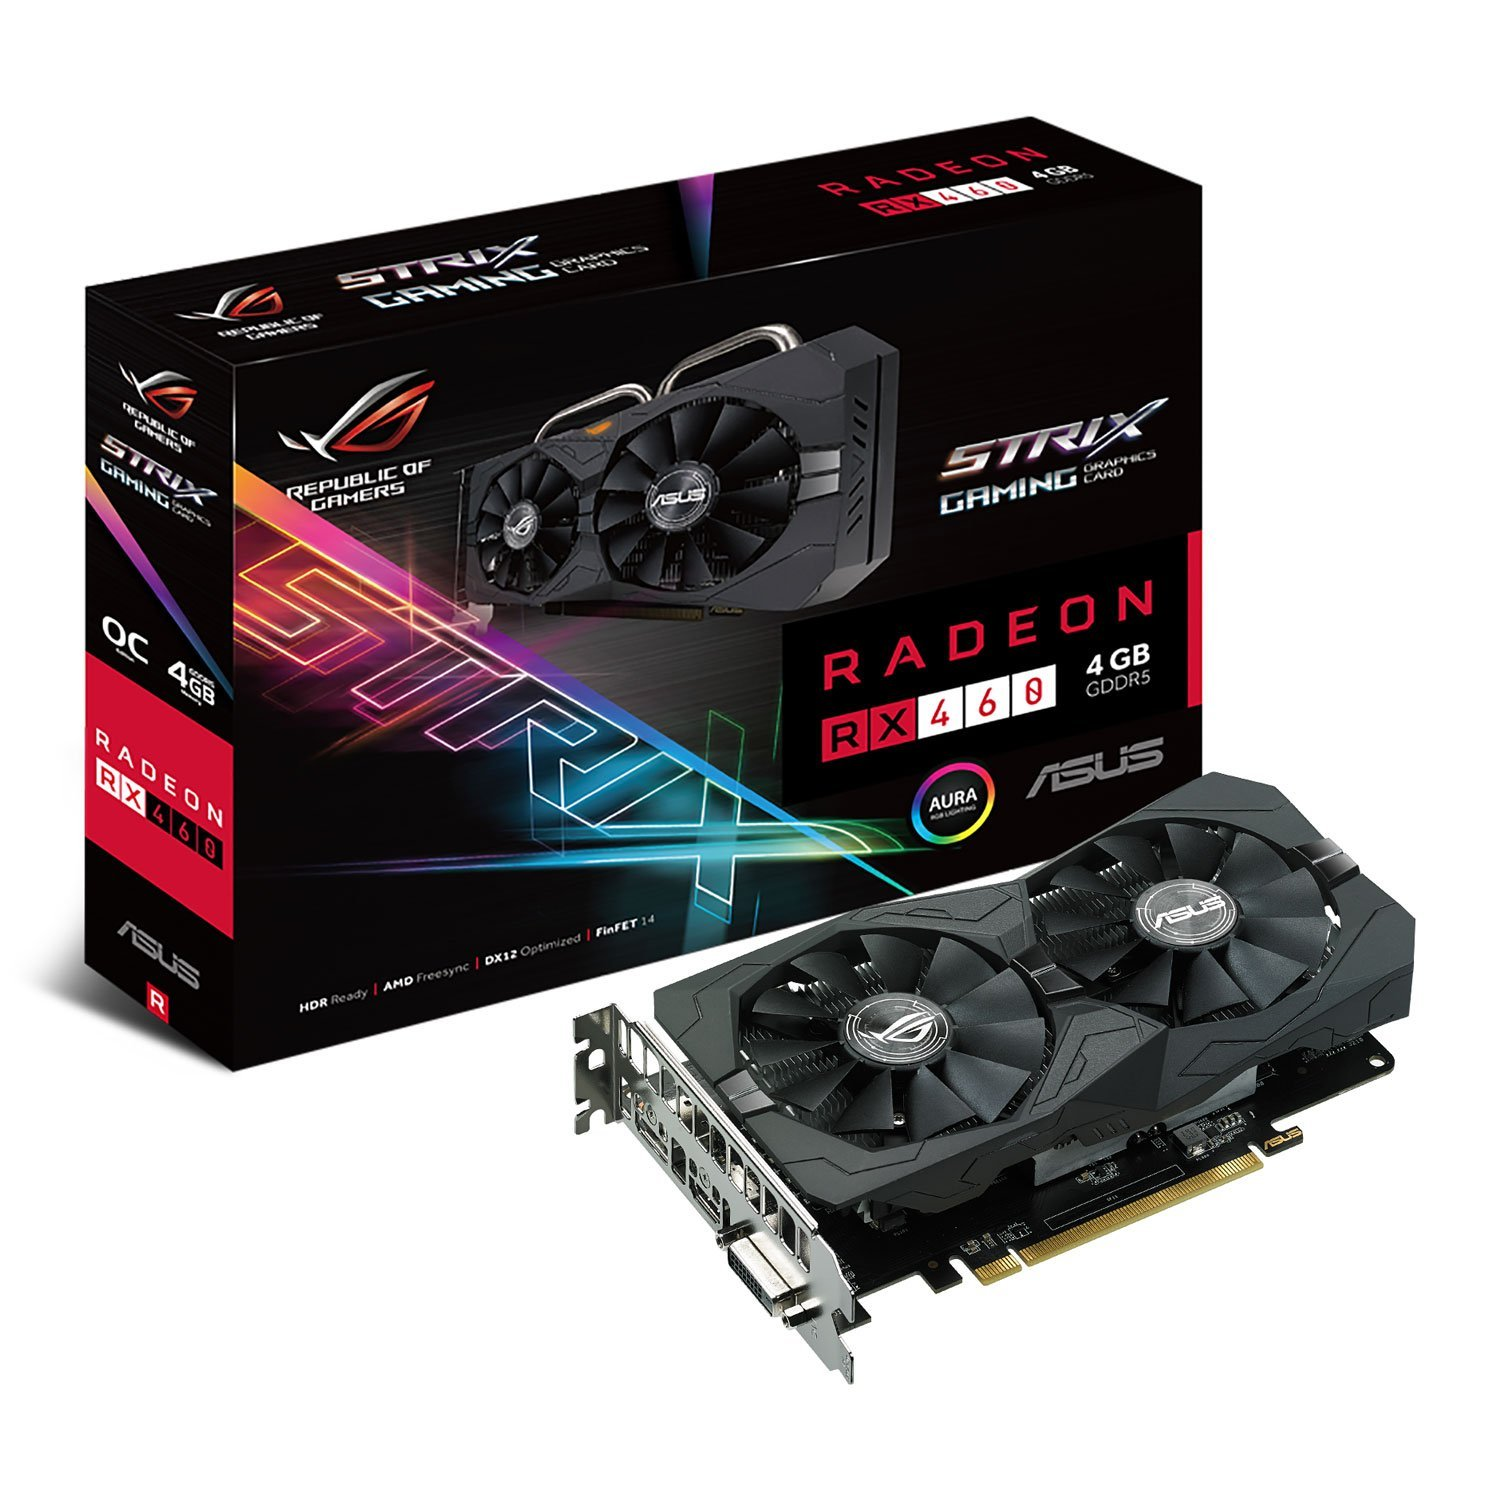 Asus Radeon RX 460 4GB STRIX Gaming